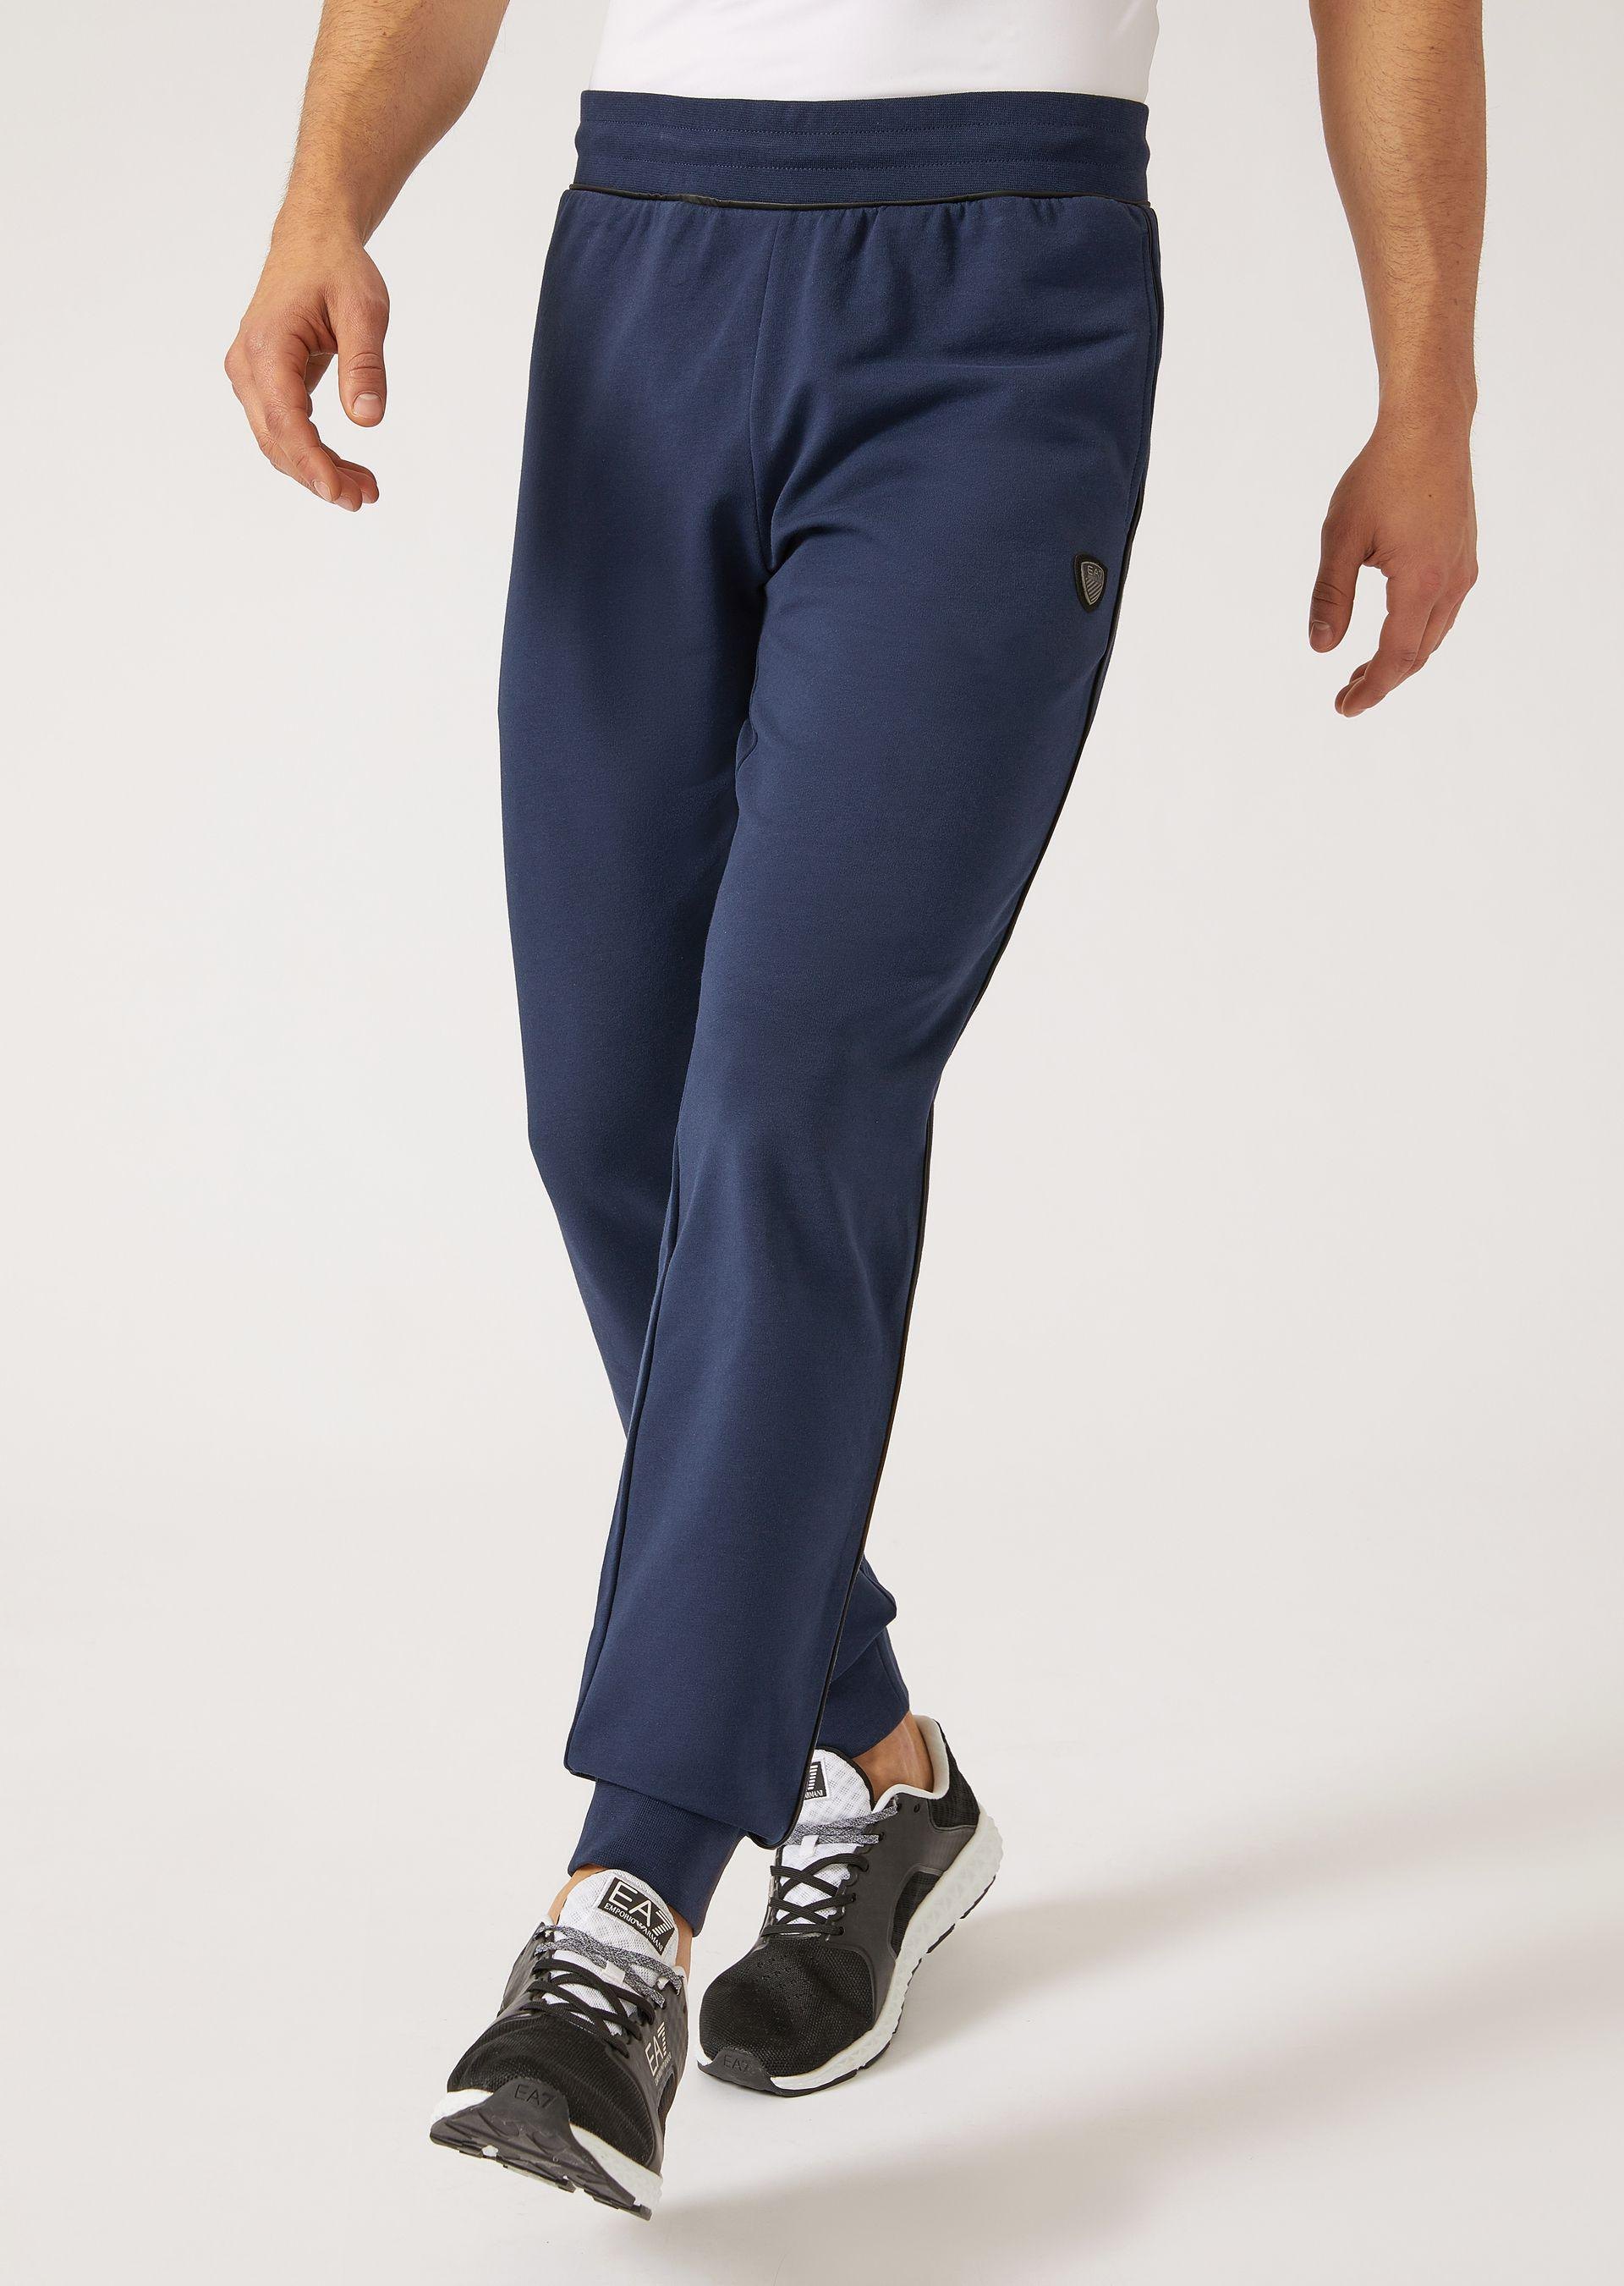 Emporio Armani Joggers - Item 13137693 In Navy Blue ; Black